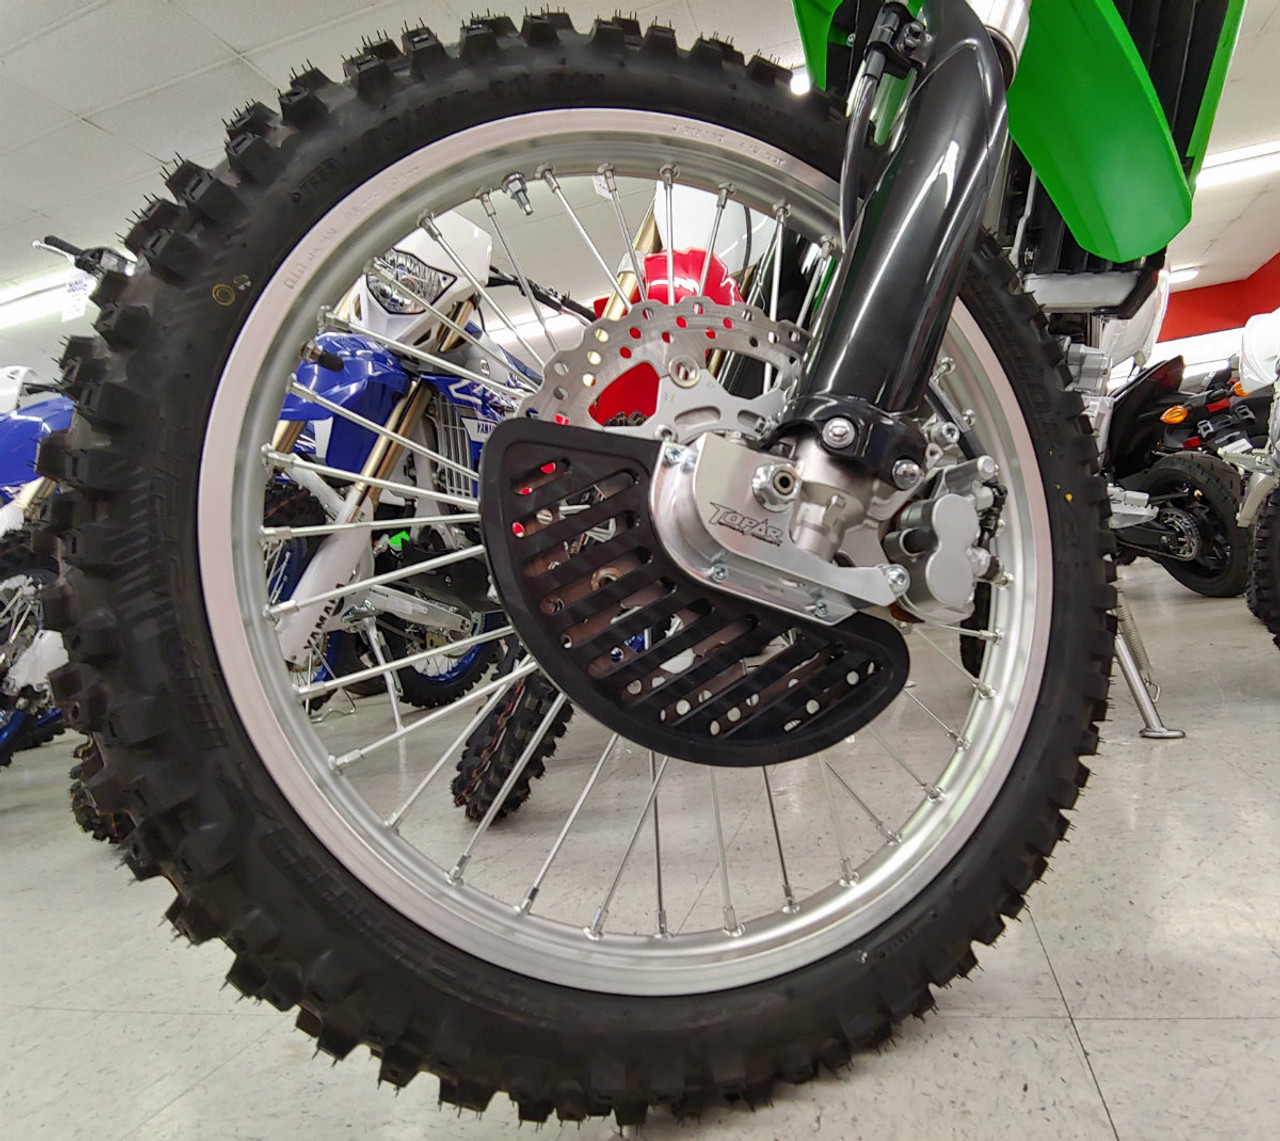 Topar Racing  Front Brake Rotor Disc Guard for 2009-2021 KAWASAKI KLX250 and KLX300  Shown here with UHMW Fin